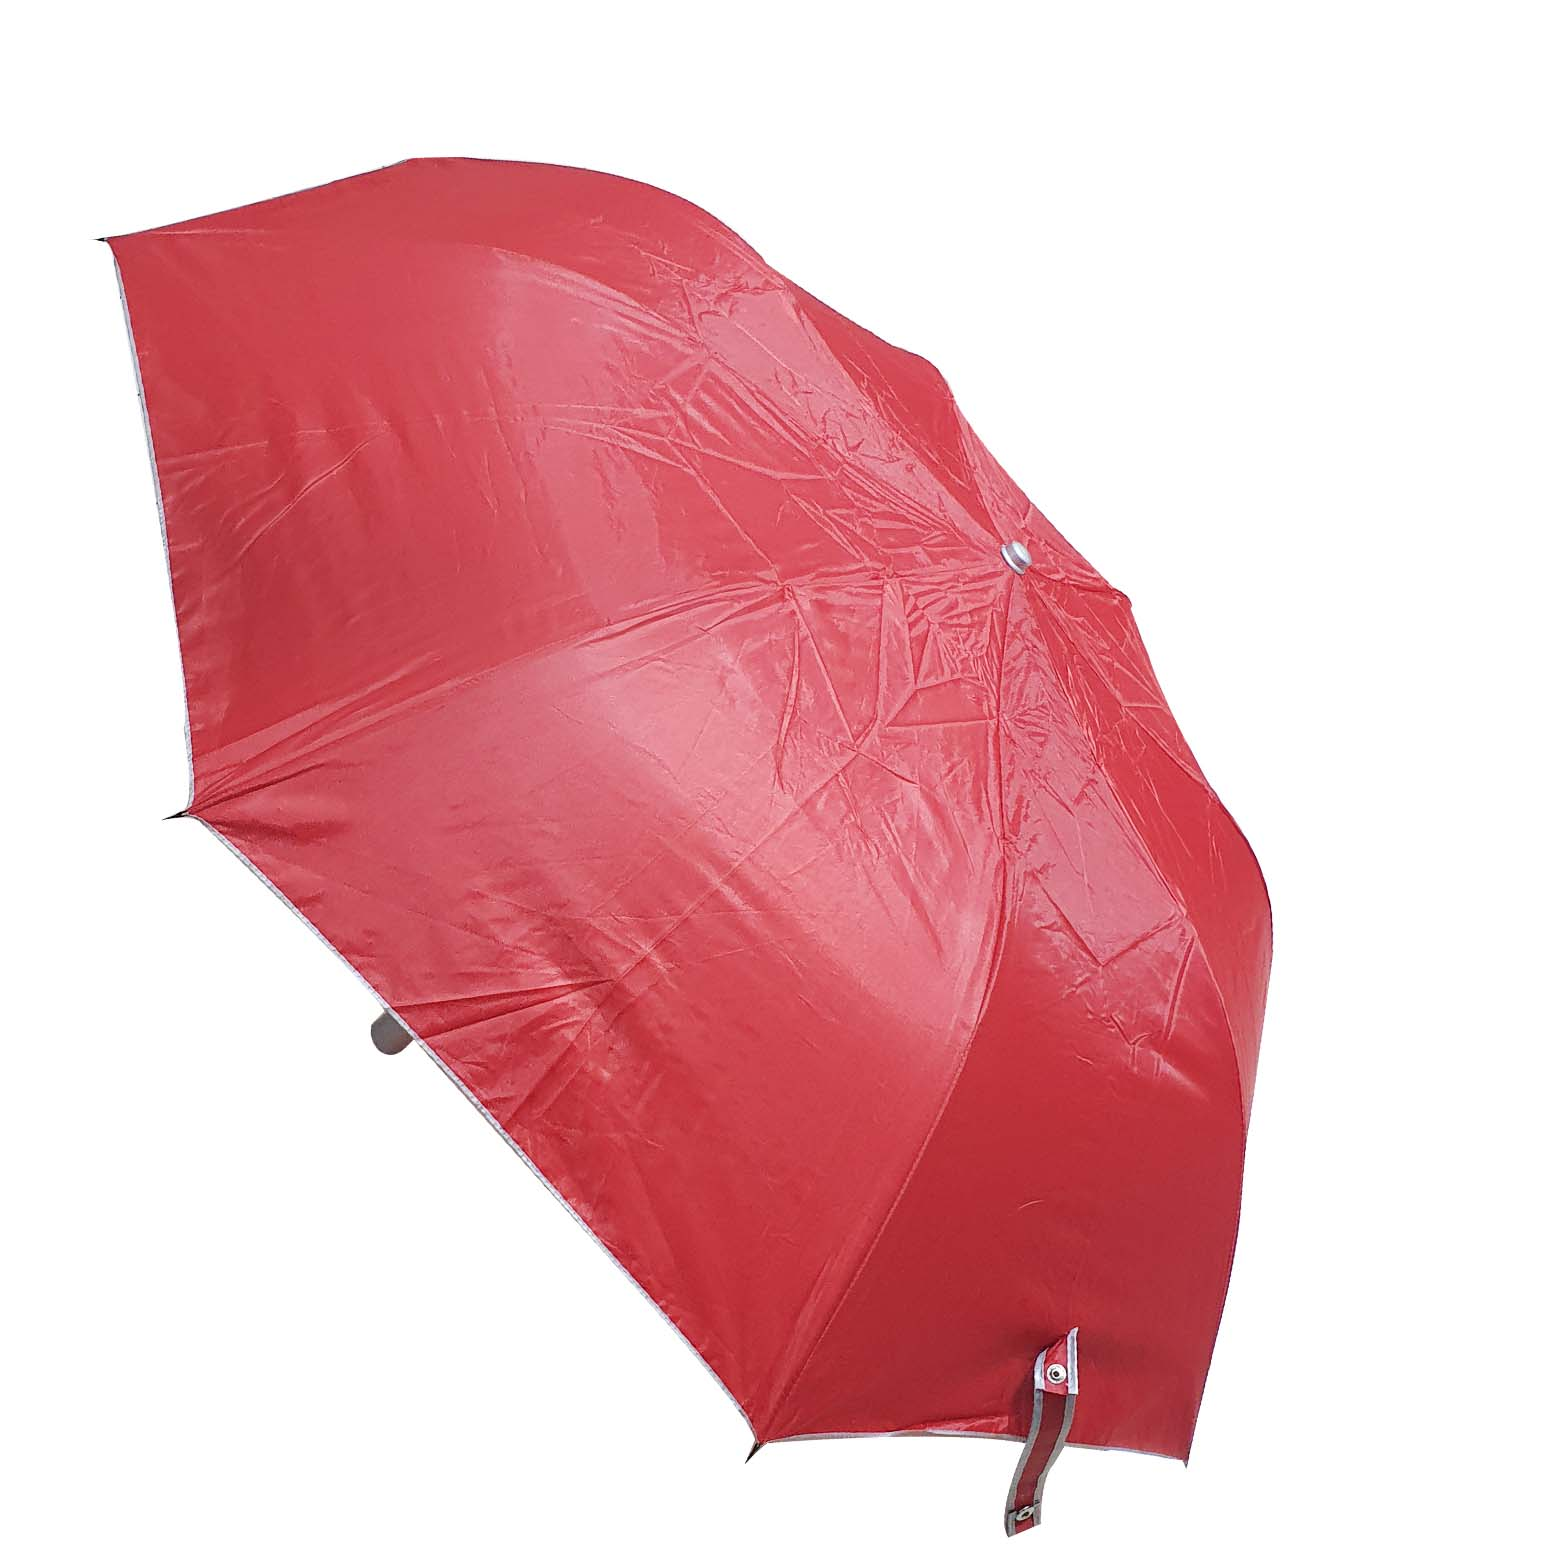 23in Folding Umbrella-Auto #42001009083